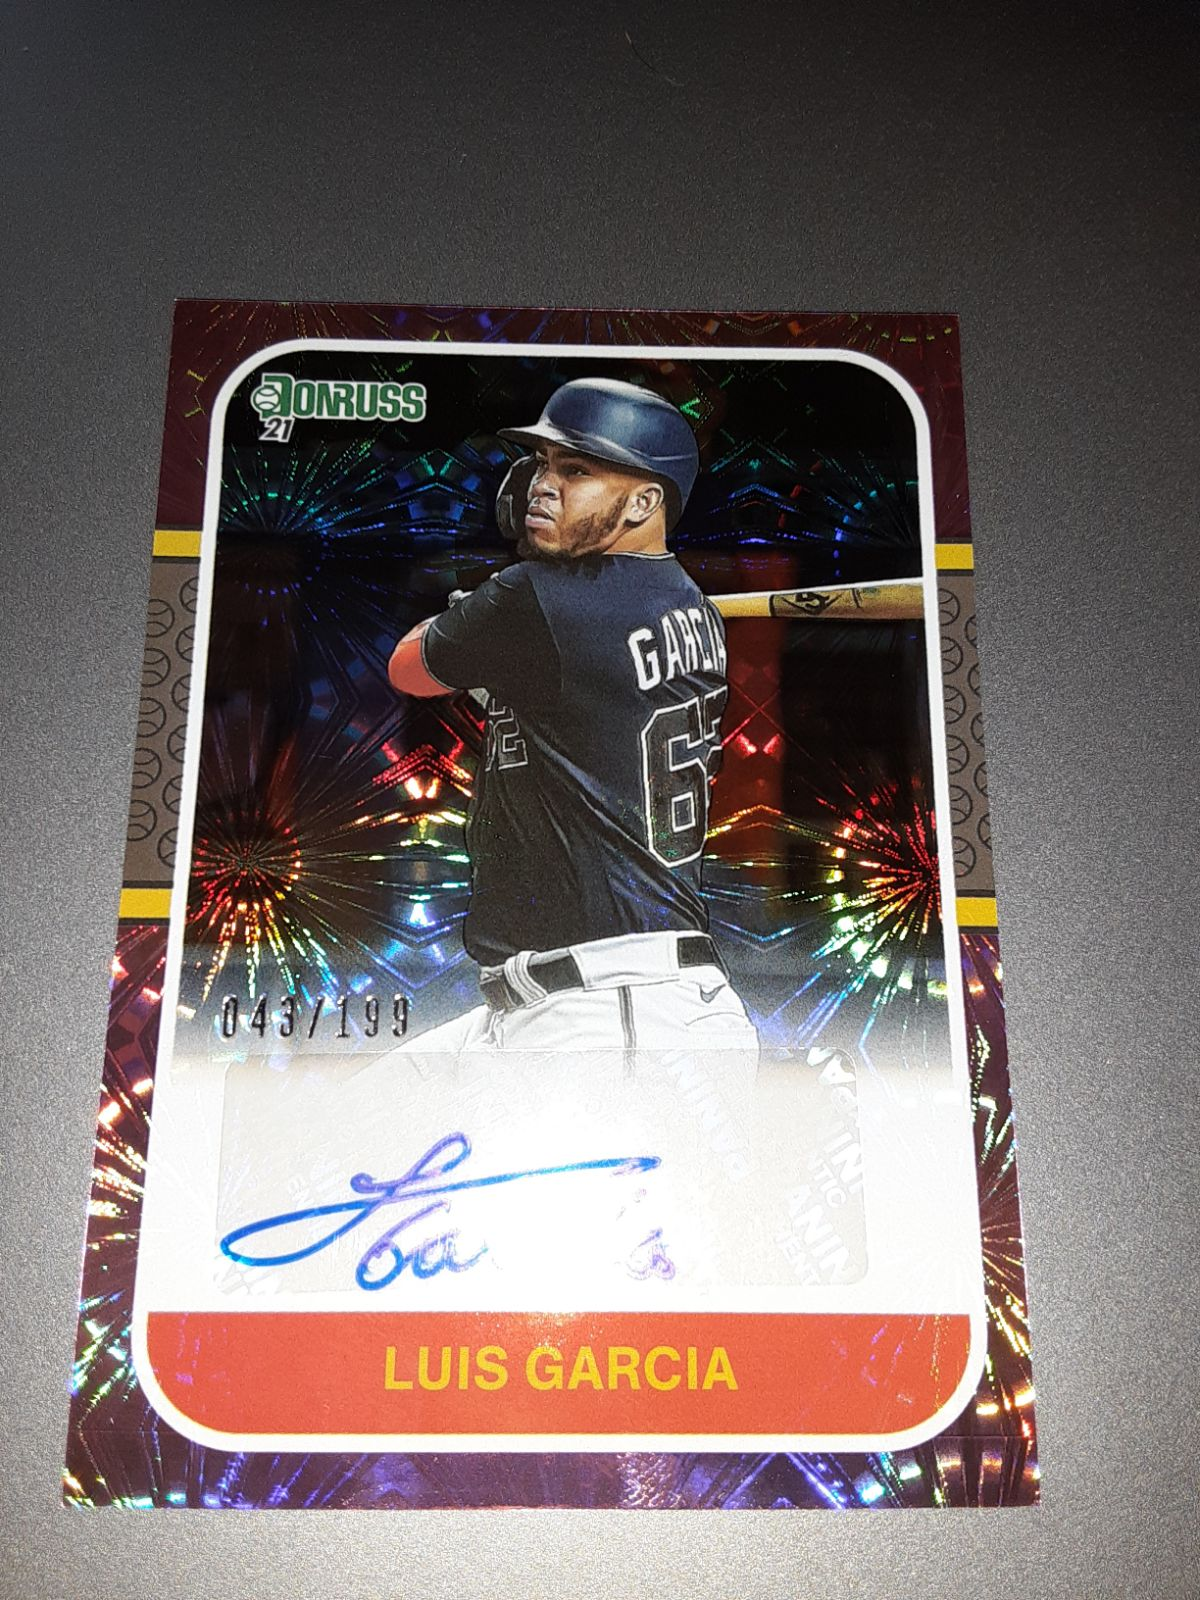 2021 donruss baseball cards auto numbere